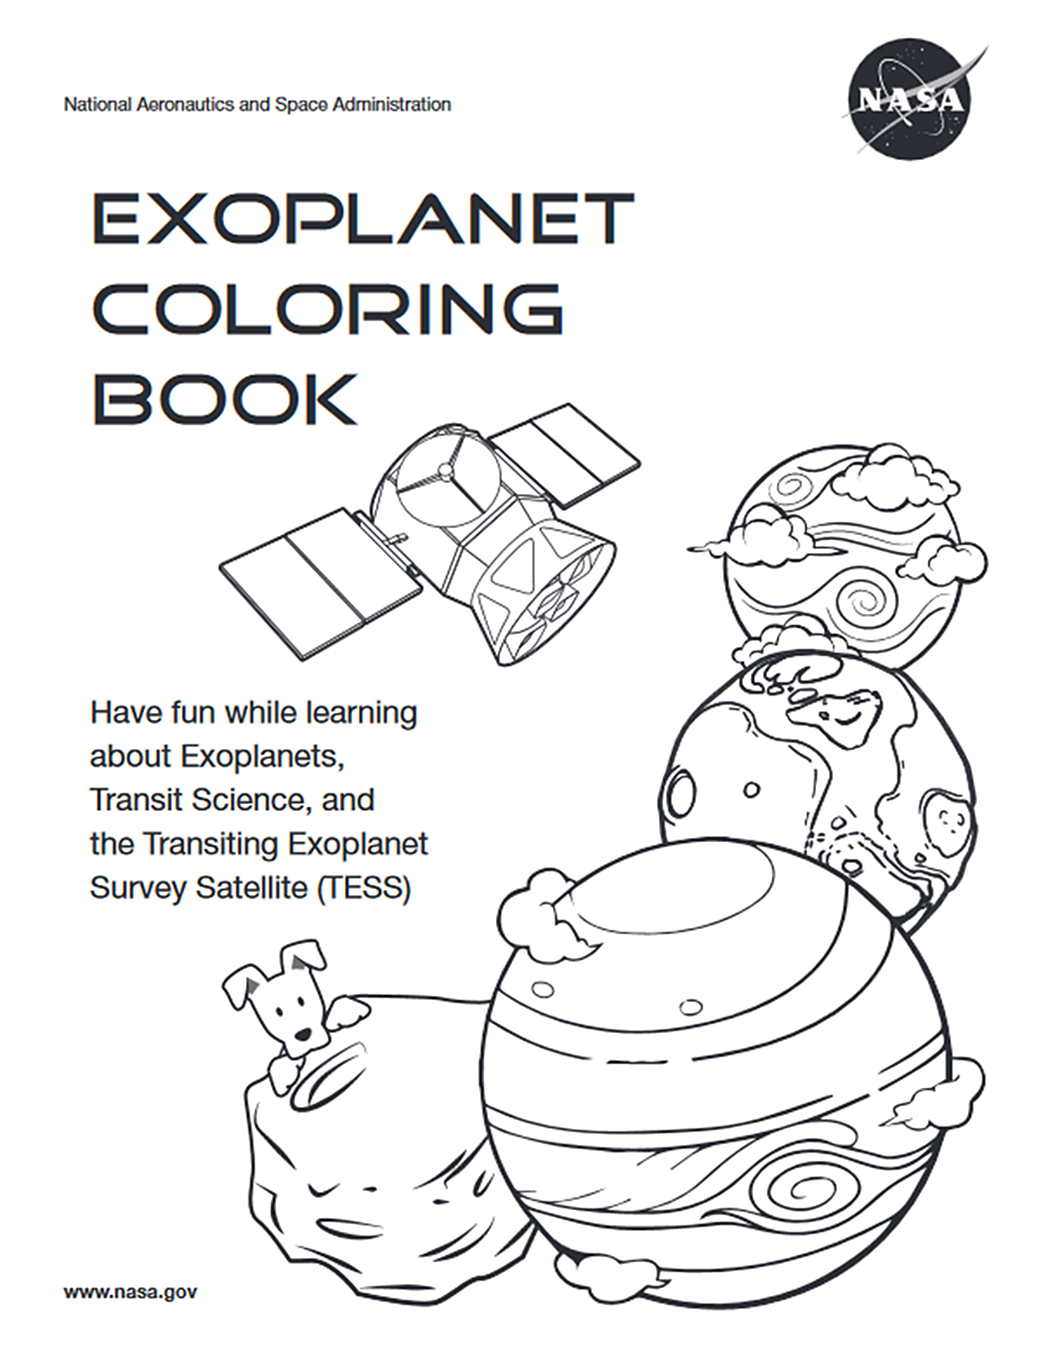 Exoplanet Coloring Book | NASA in 2020 | Coloring books ...